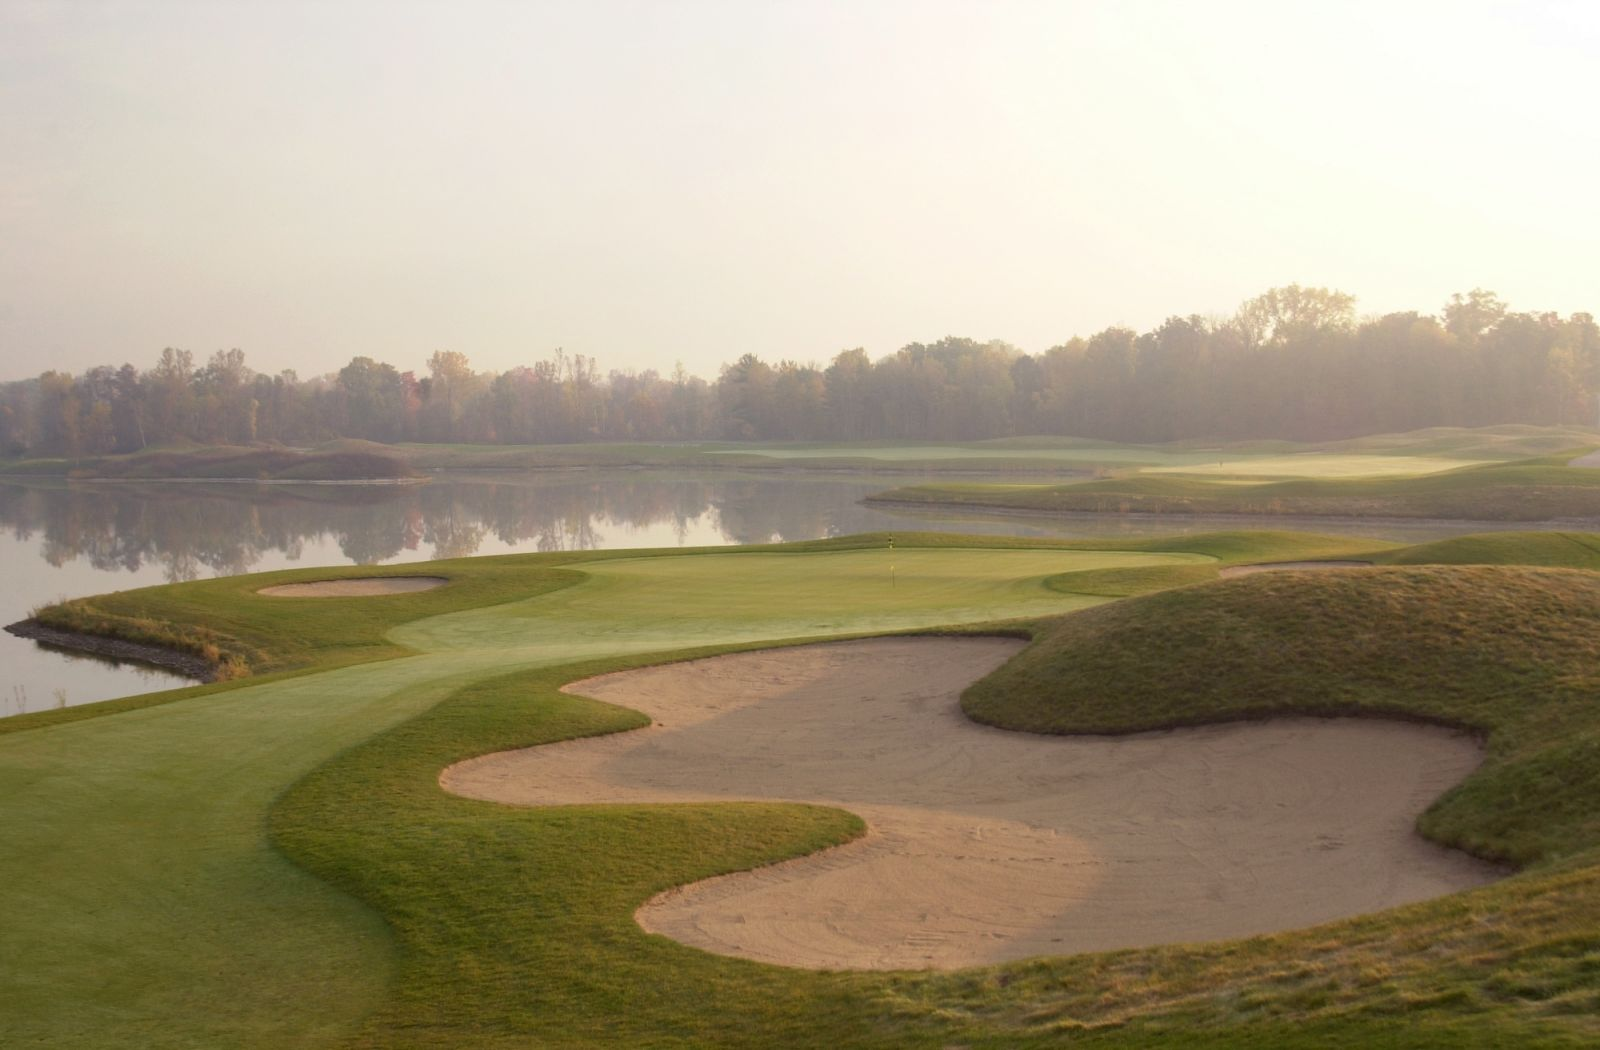 Photo Of Award-Winning Michigan Golf Courses - Bucks Run Golf Club